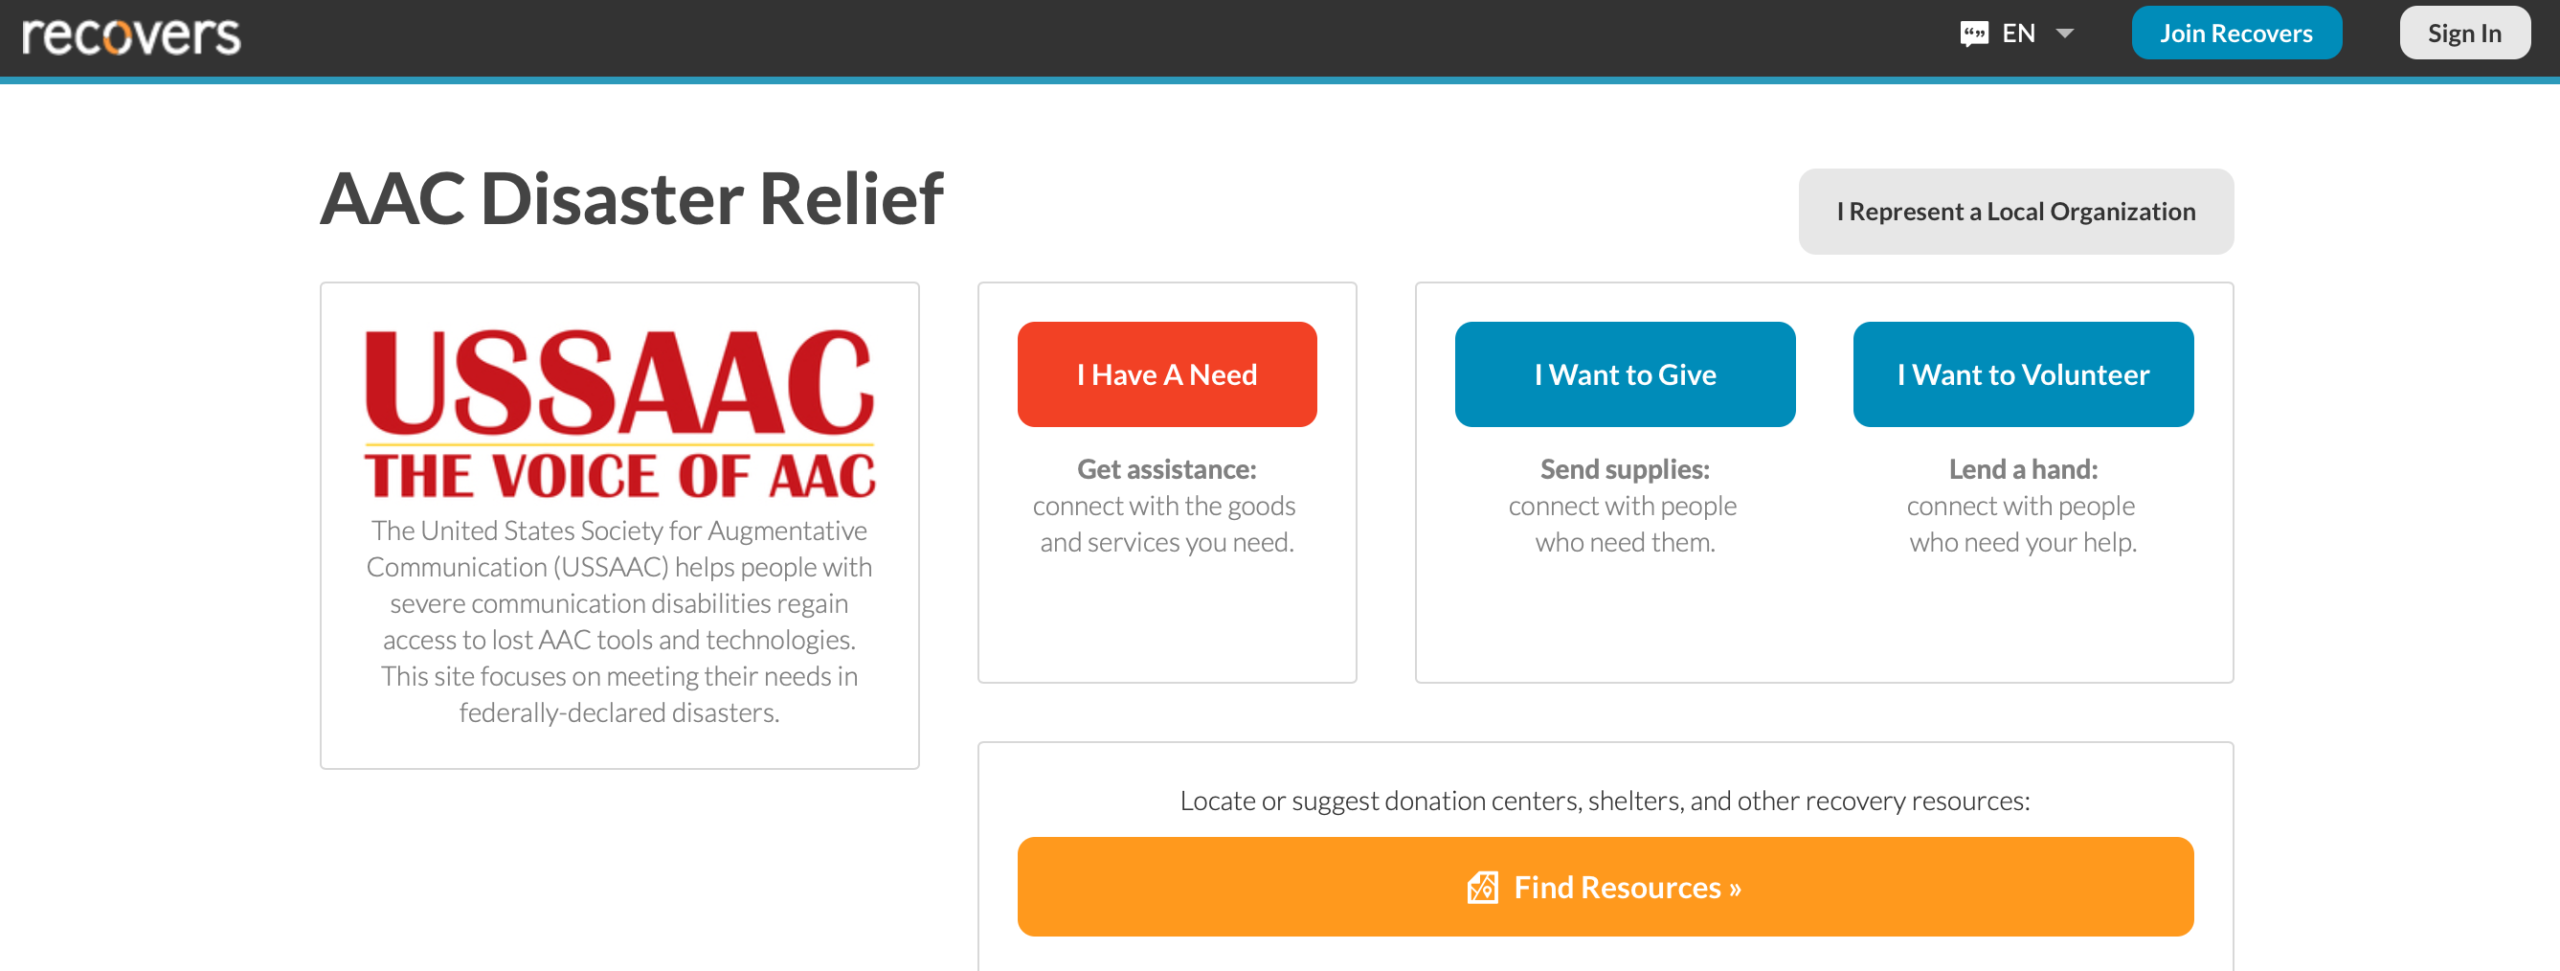 AAC Disaster Relief1